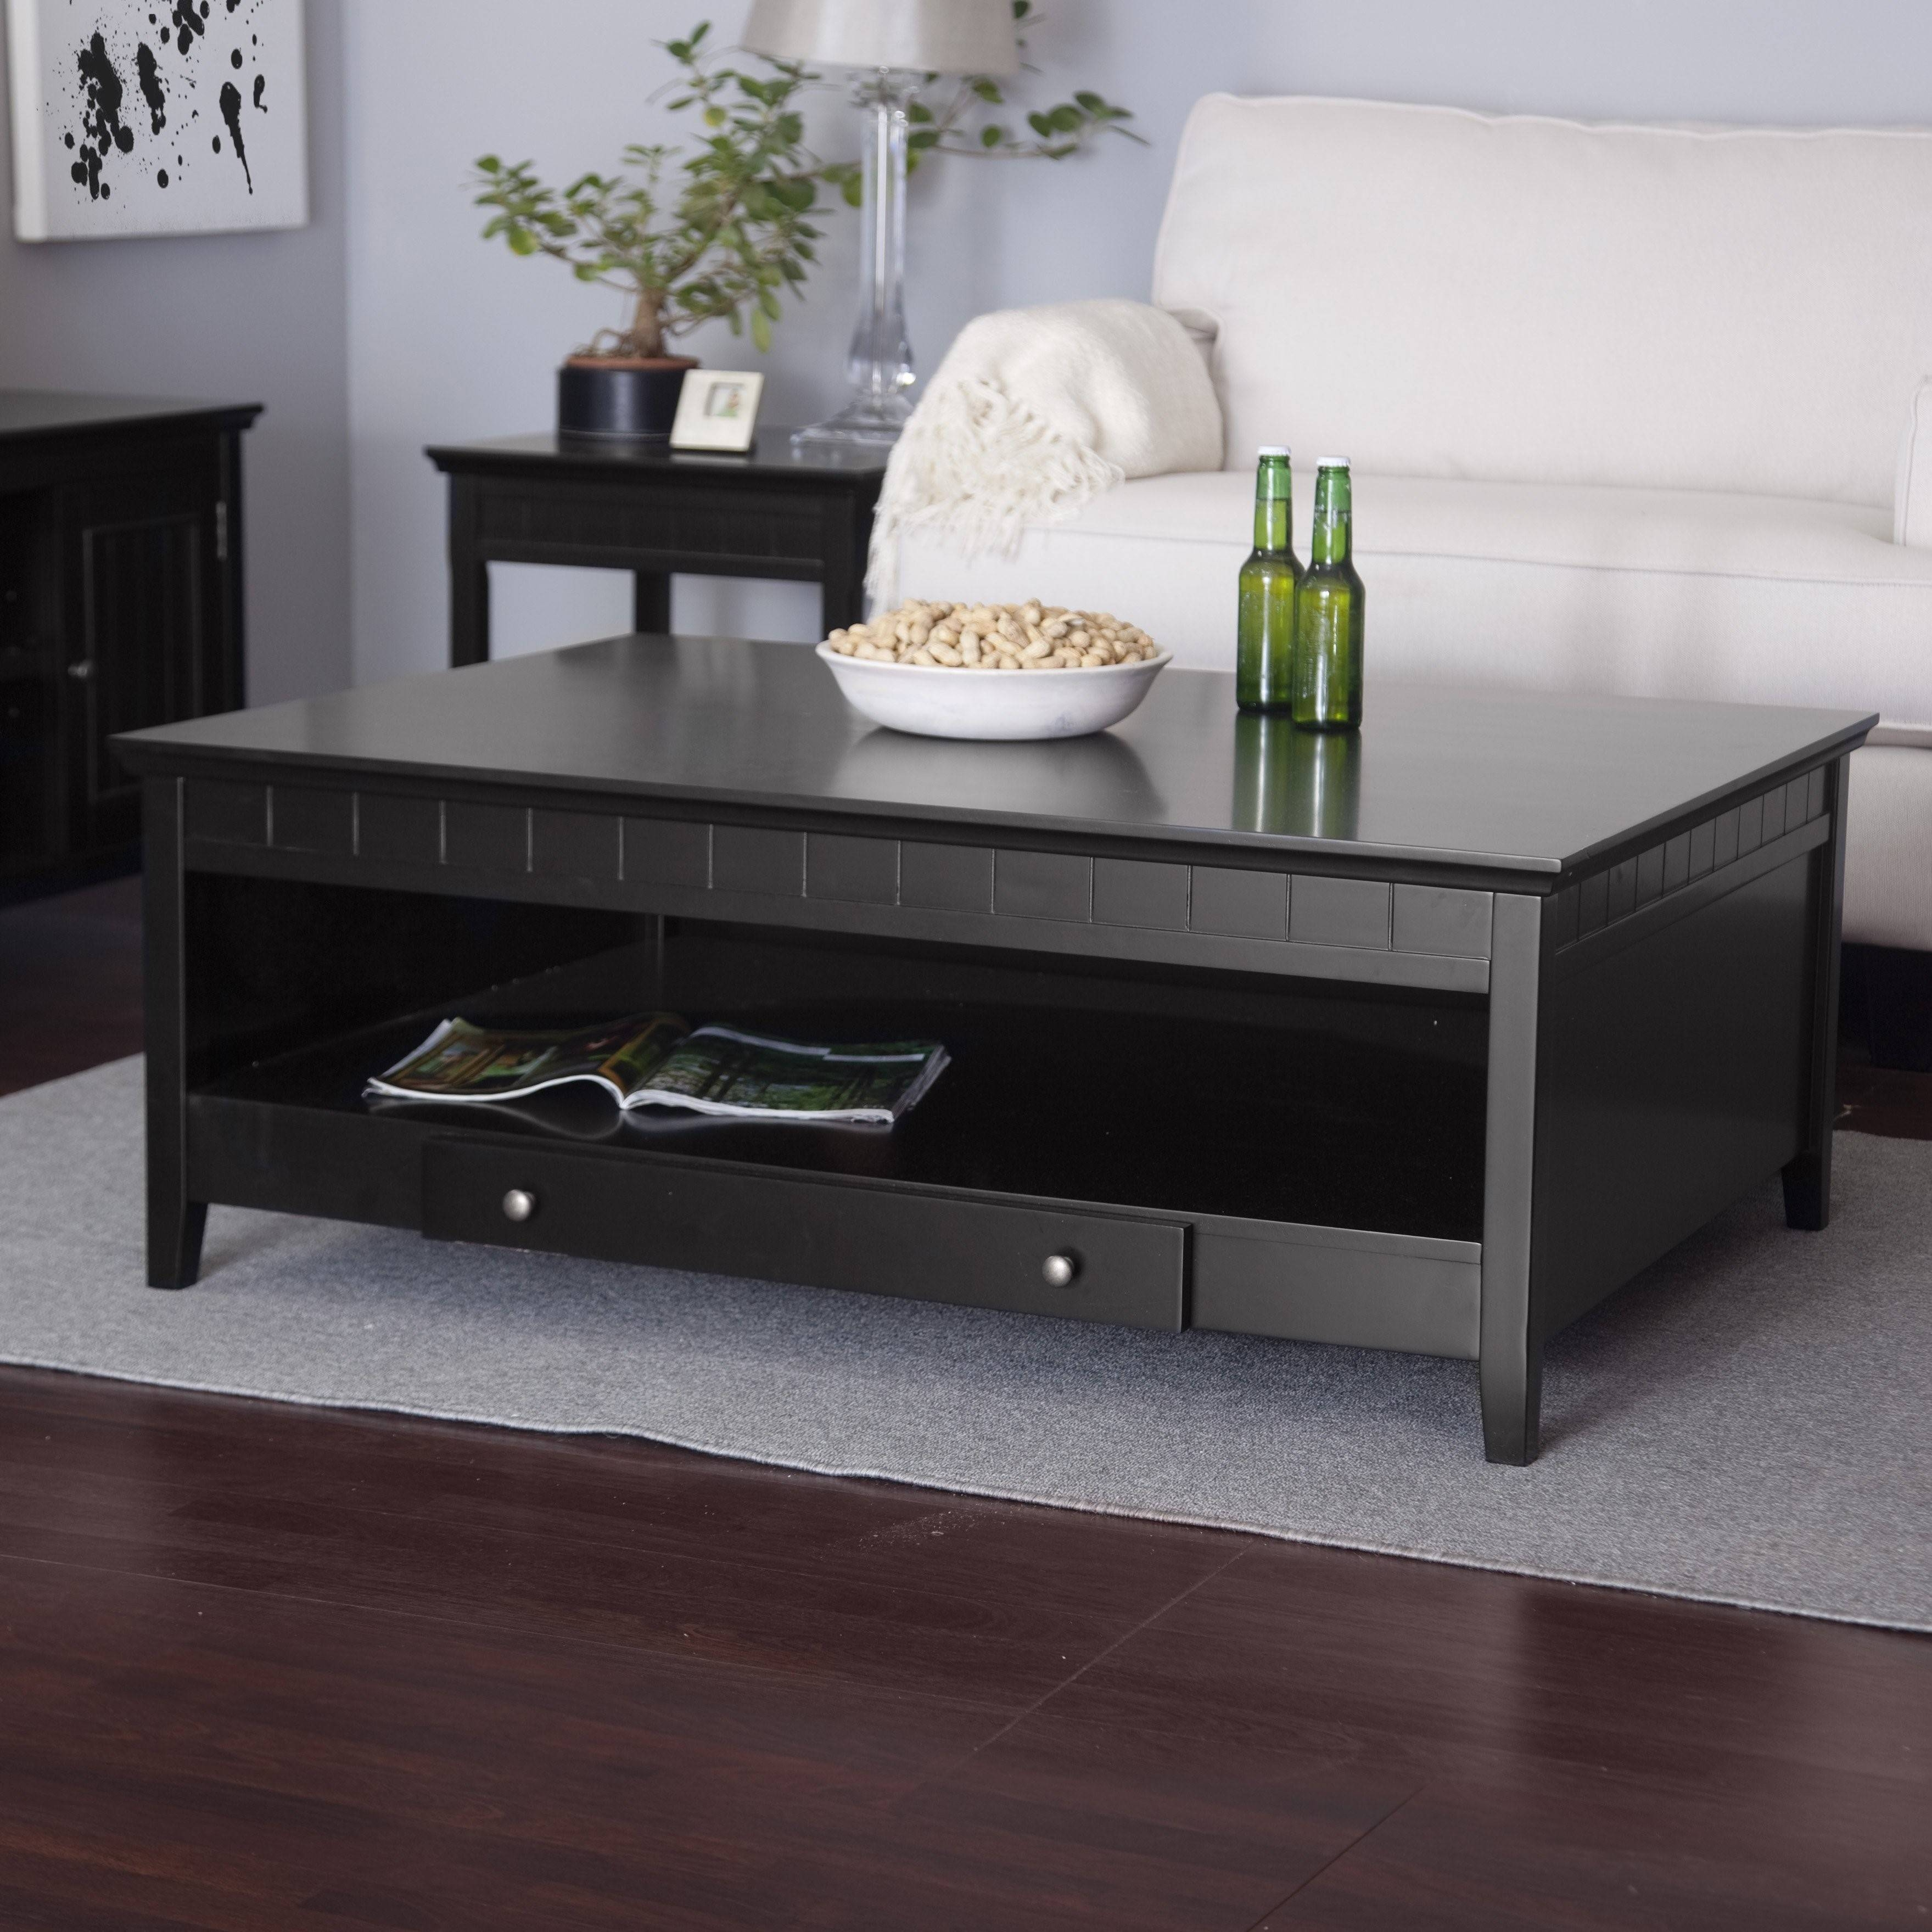 Furniture. Black Coffee Table With Storage Design Ideas: Small within Black Coffee Tables (Image 18 of 30)